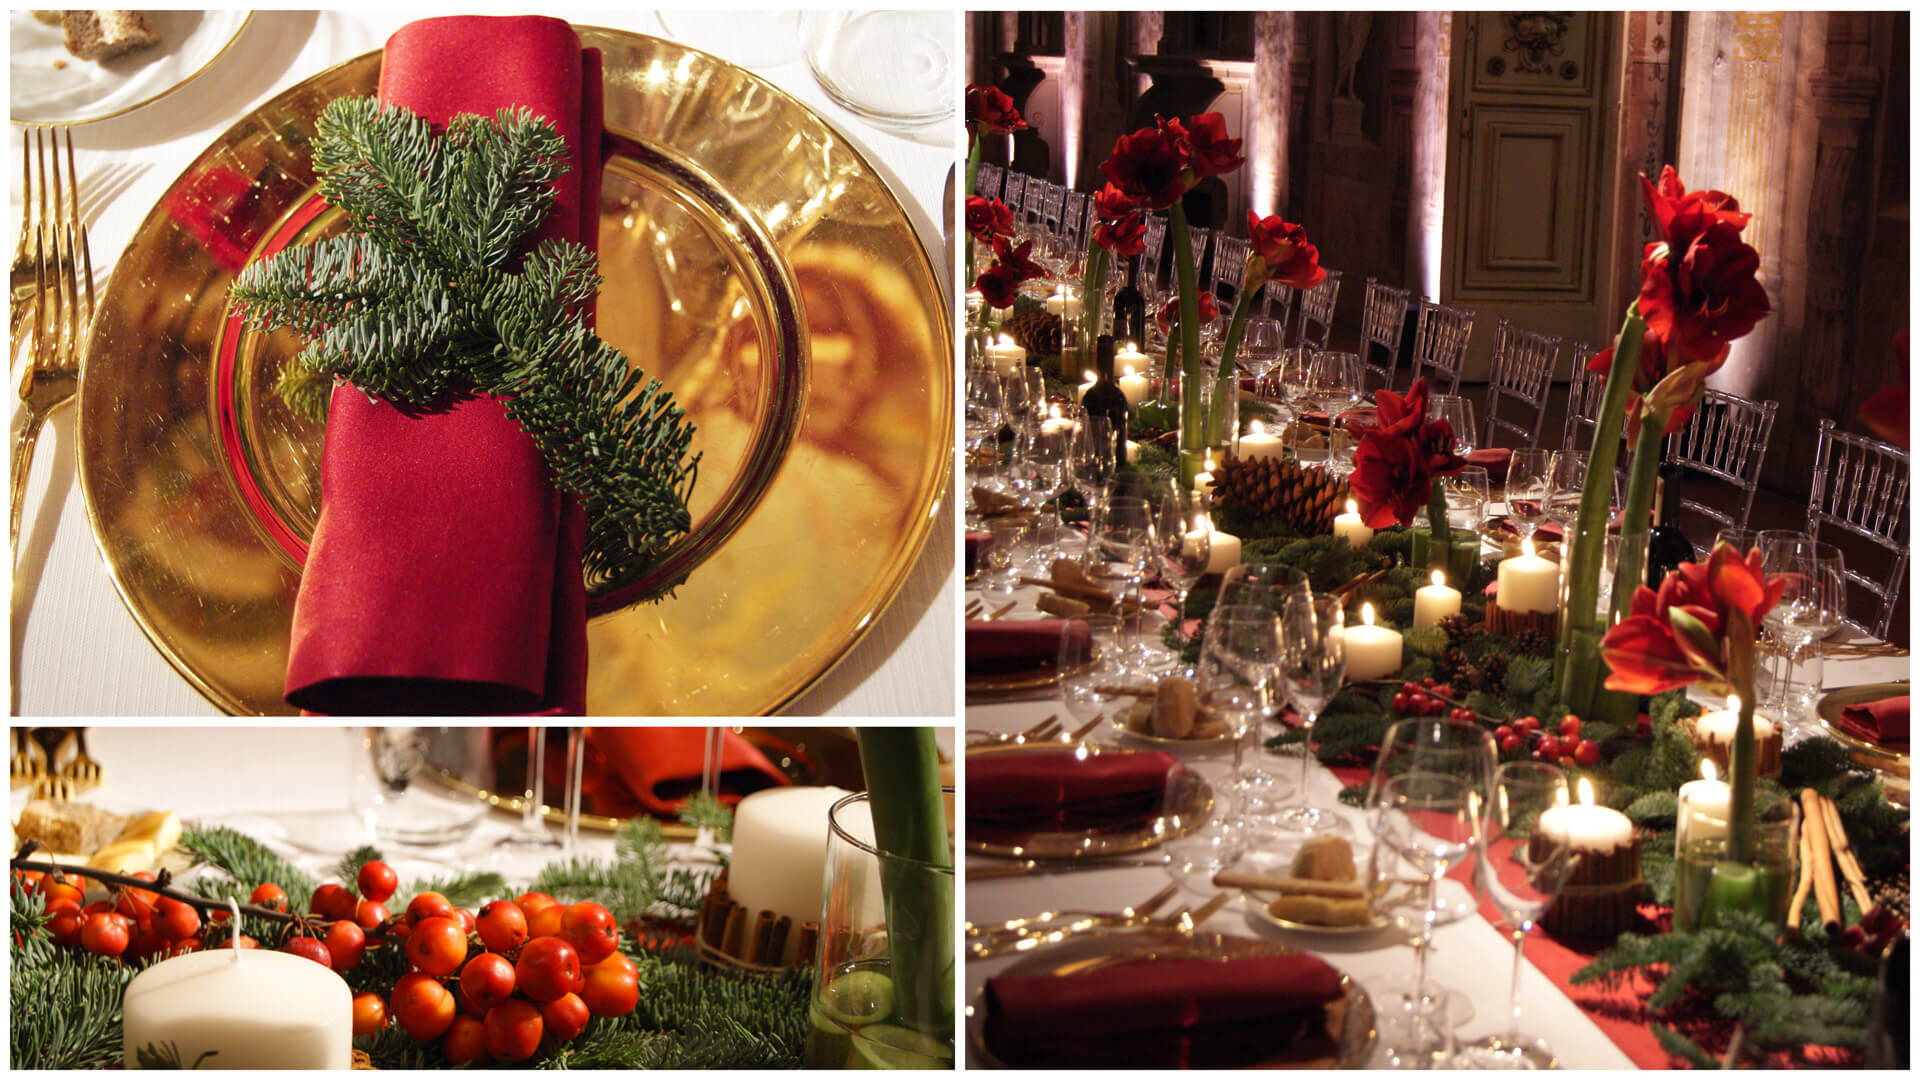 fiorile_firenze_christmas_event_4